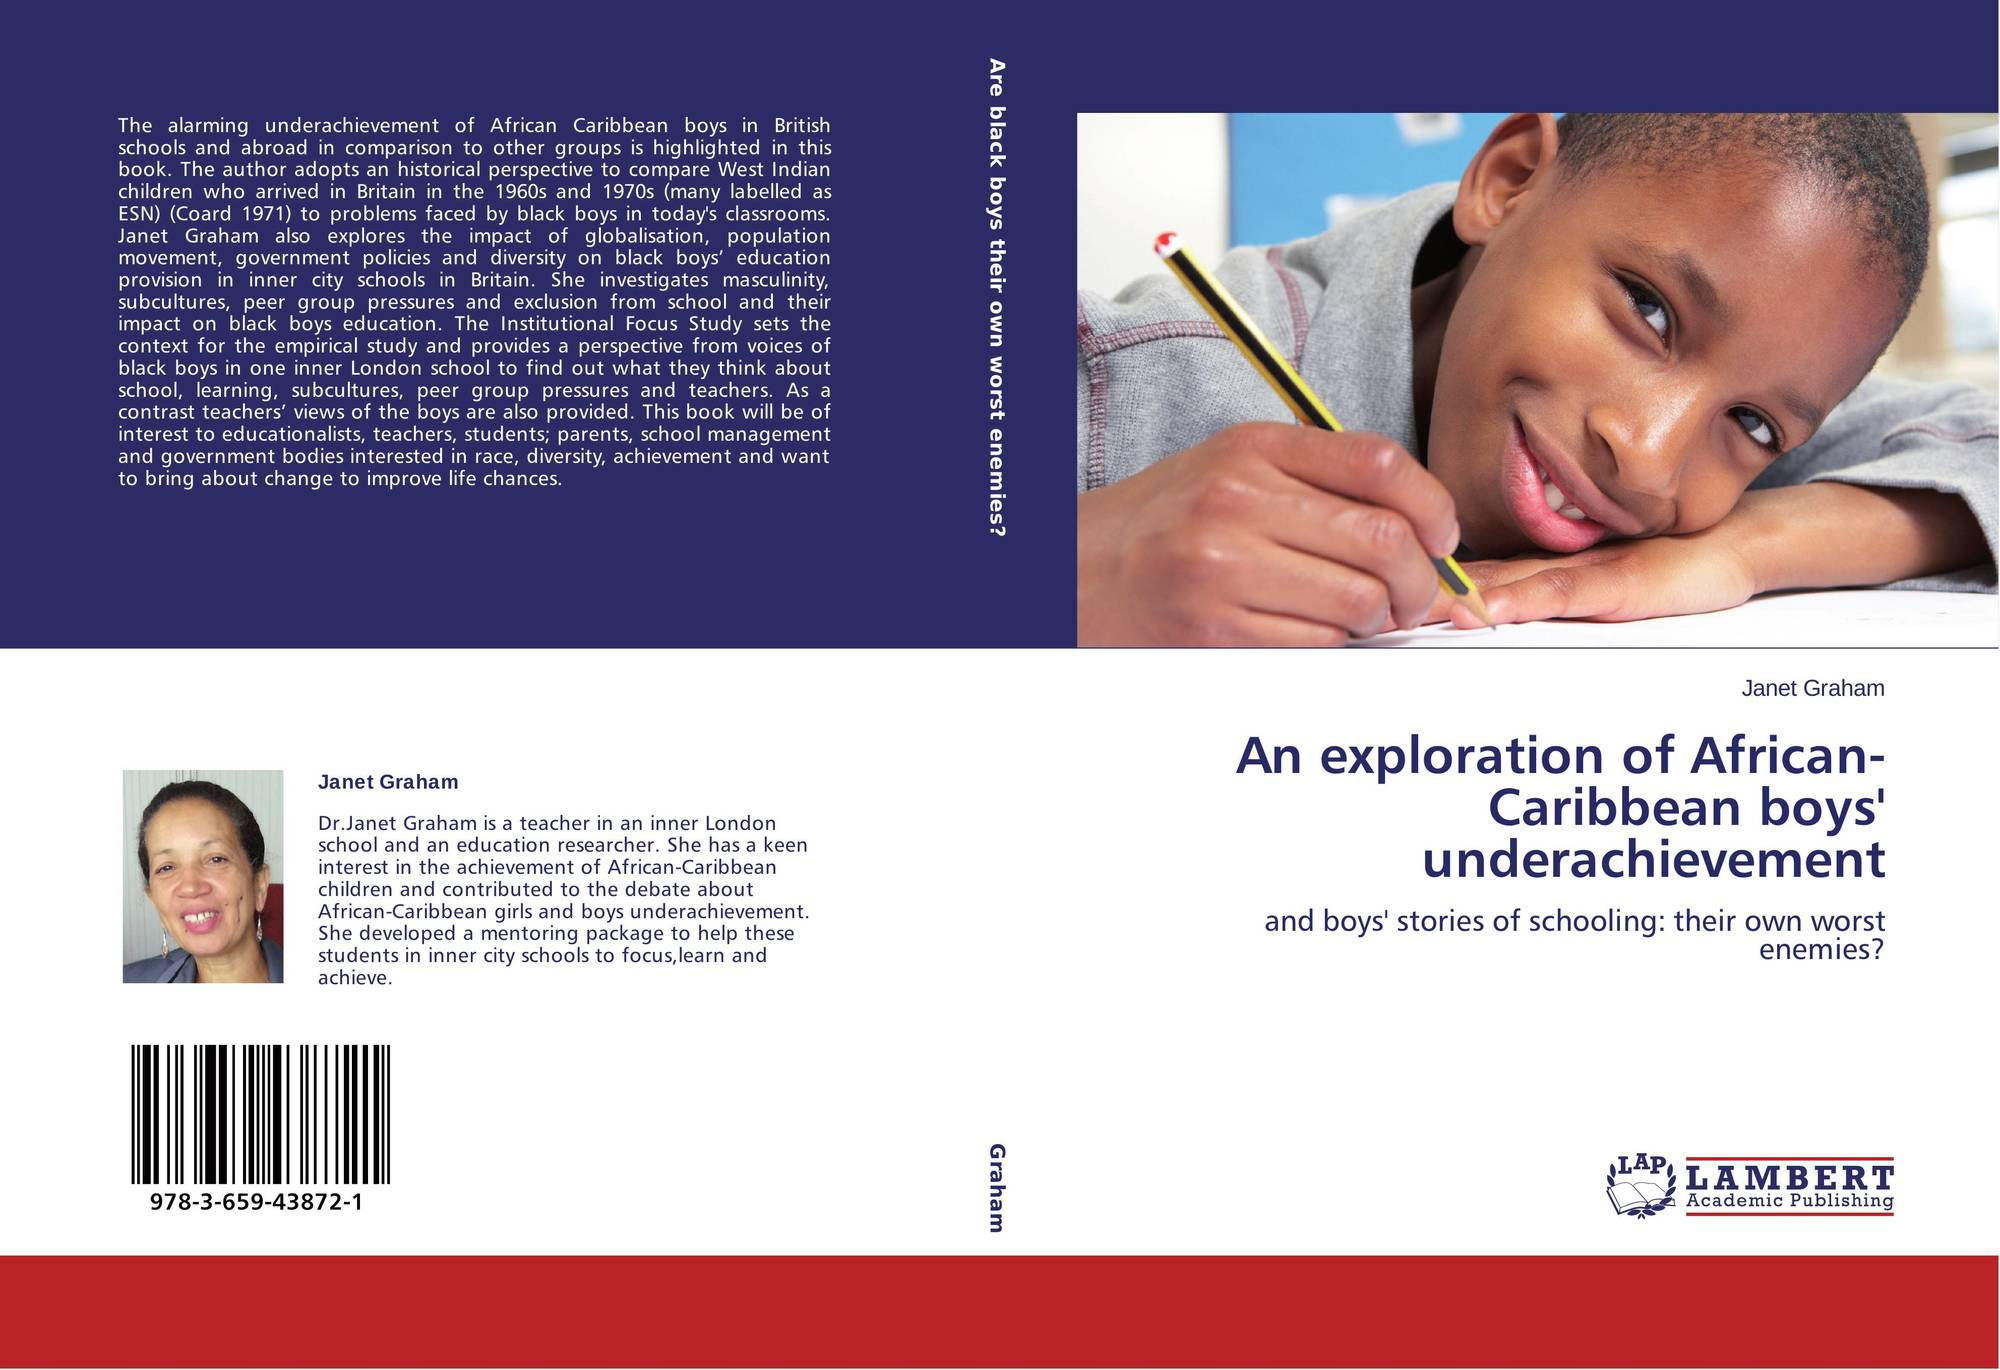 dissertation on boys underachievement My hypothesis is 'boys underachieve in education due to laddish behaviour' this subject is important for me as i see 'laddish' behaviour in most of my we will write a custom essay sample on boys underachievement in education specifically for you for only $1638 $139/page.